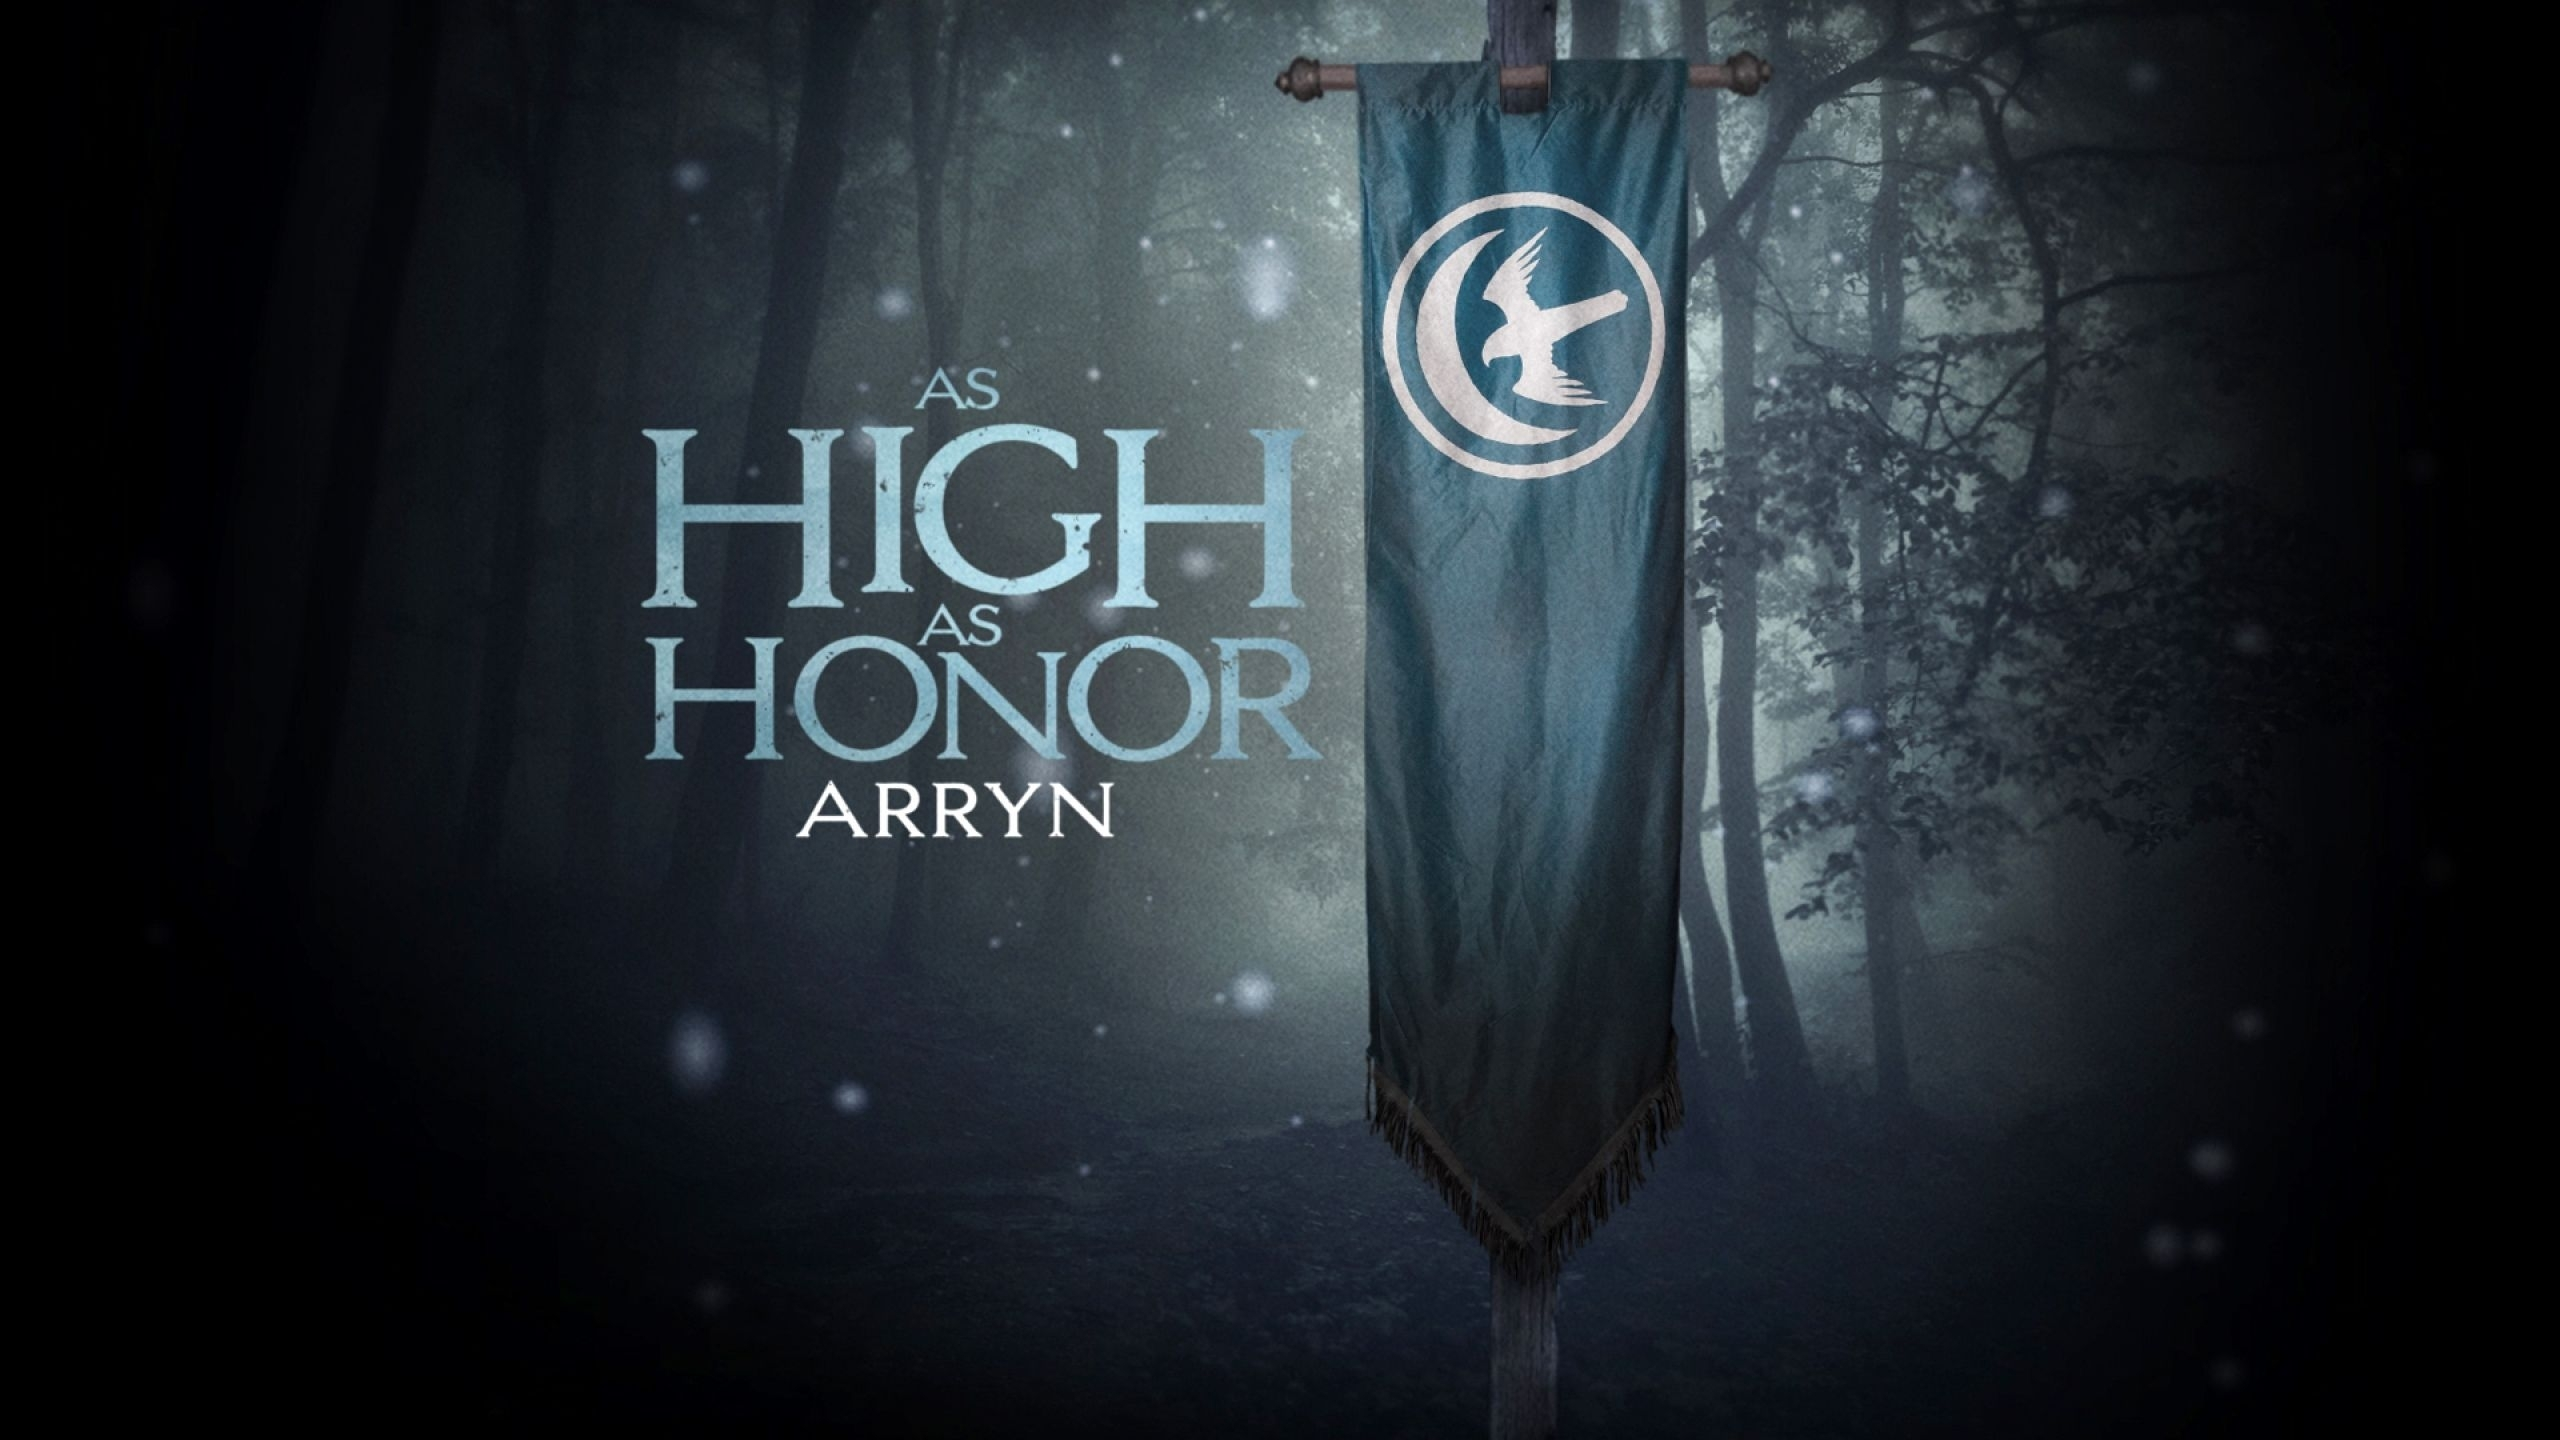 game of thrones house arryn banner hd mobile wallpaper | game of